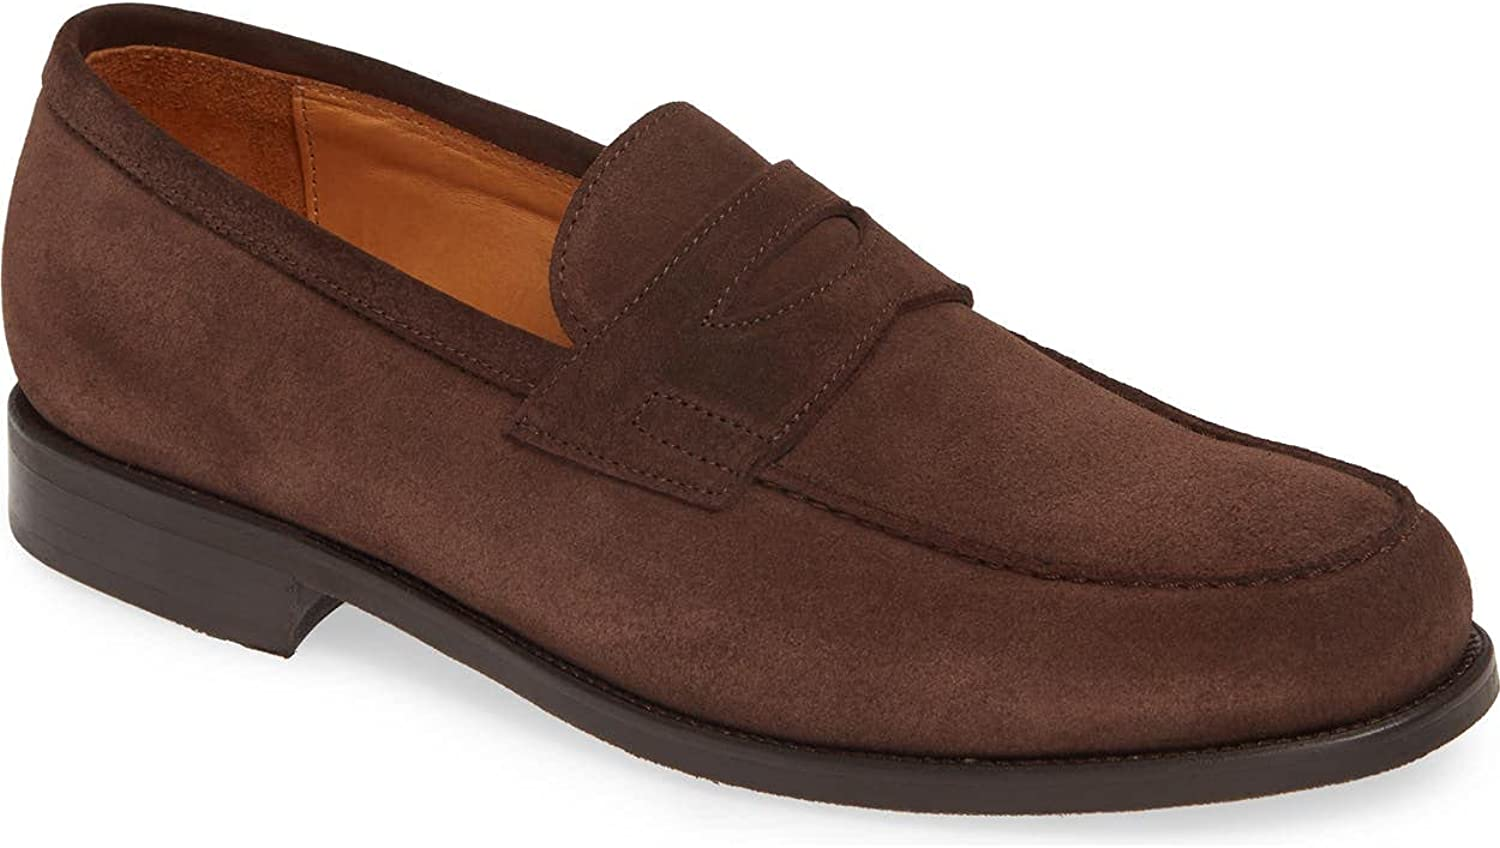 Jack Erwin Men's Brown Suede Carmine Penny Loafers